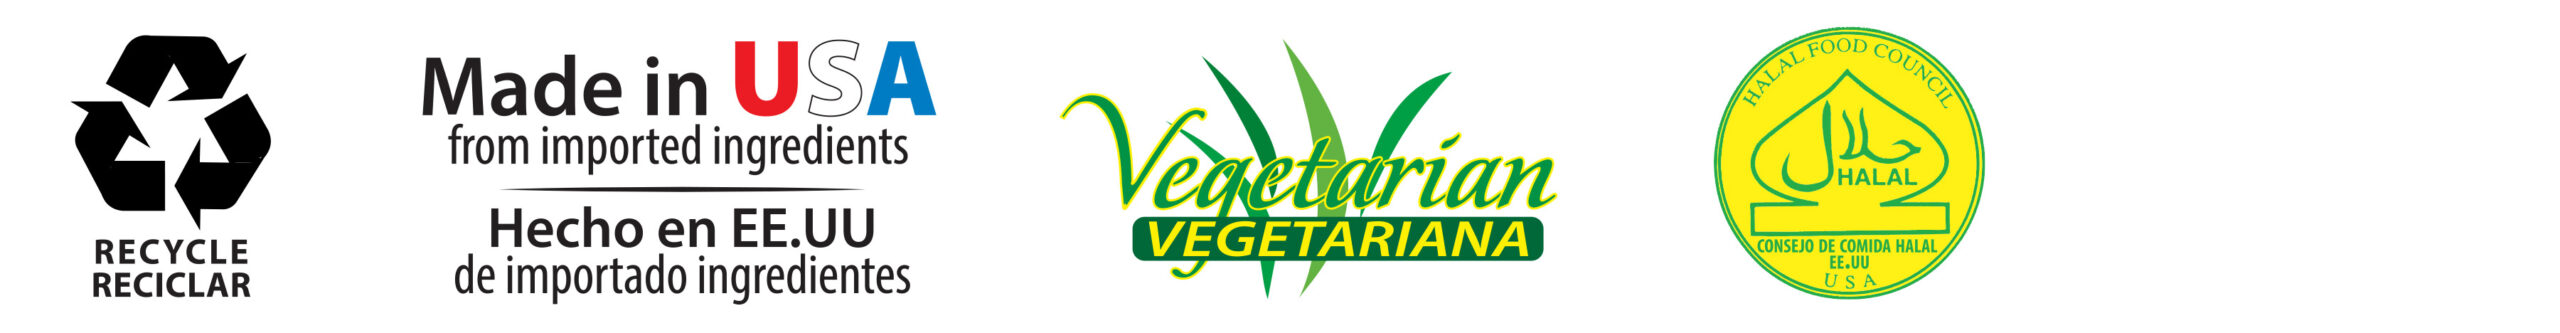 Recycle-Made in USA-Vegetarian-Halal